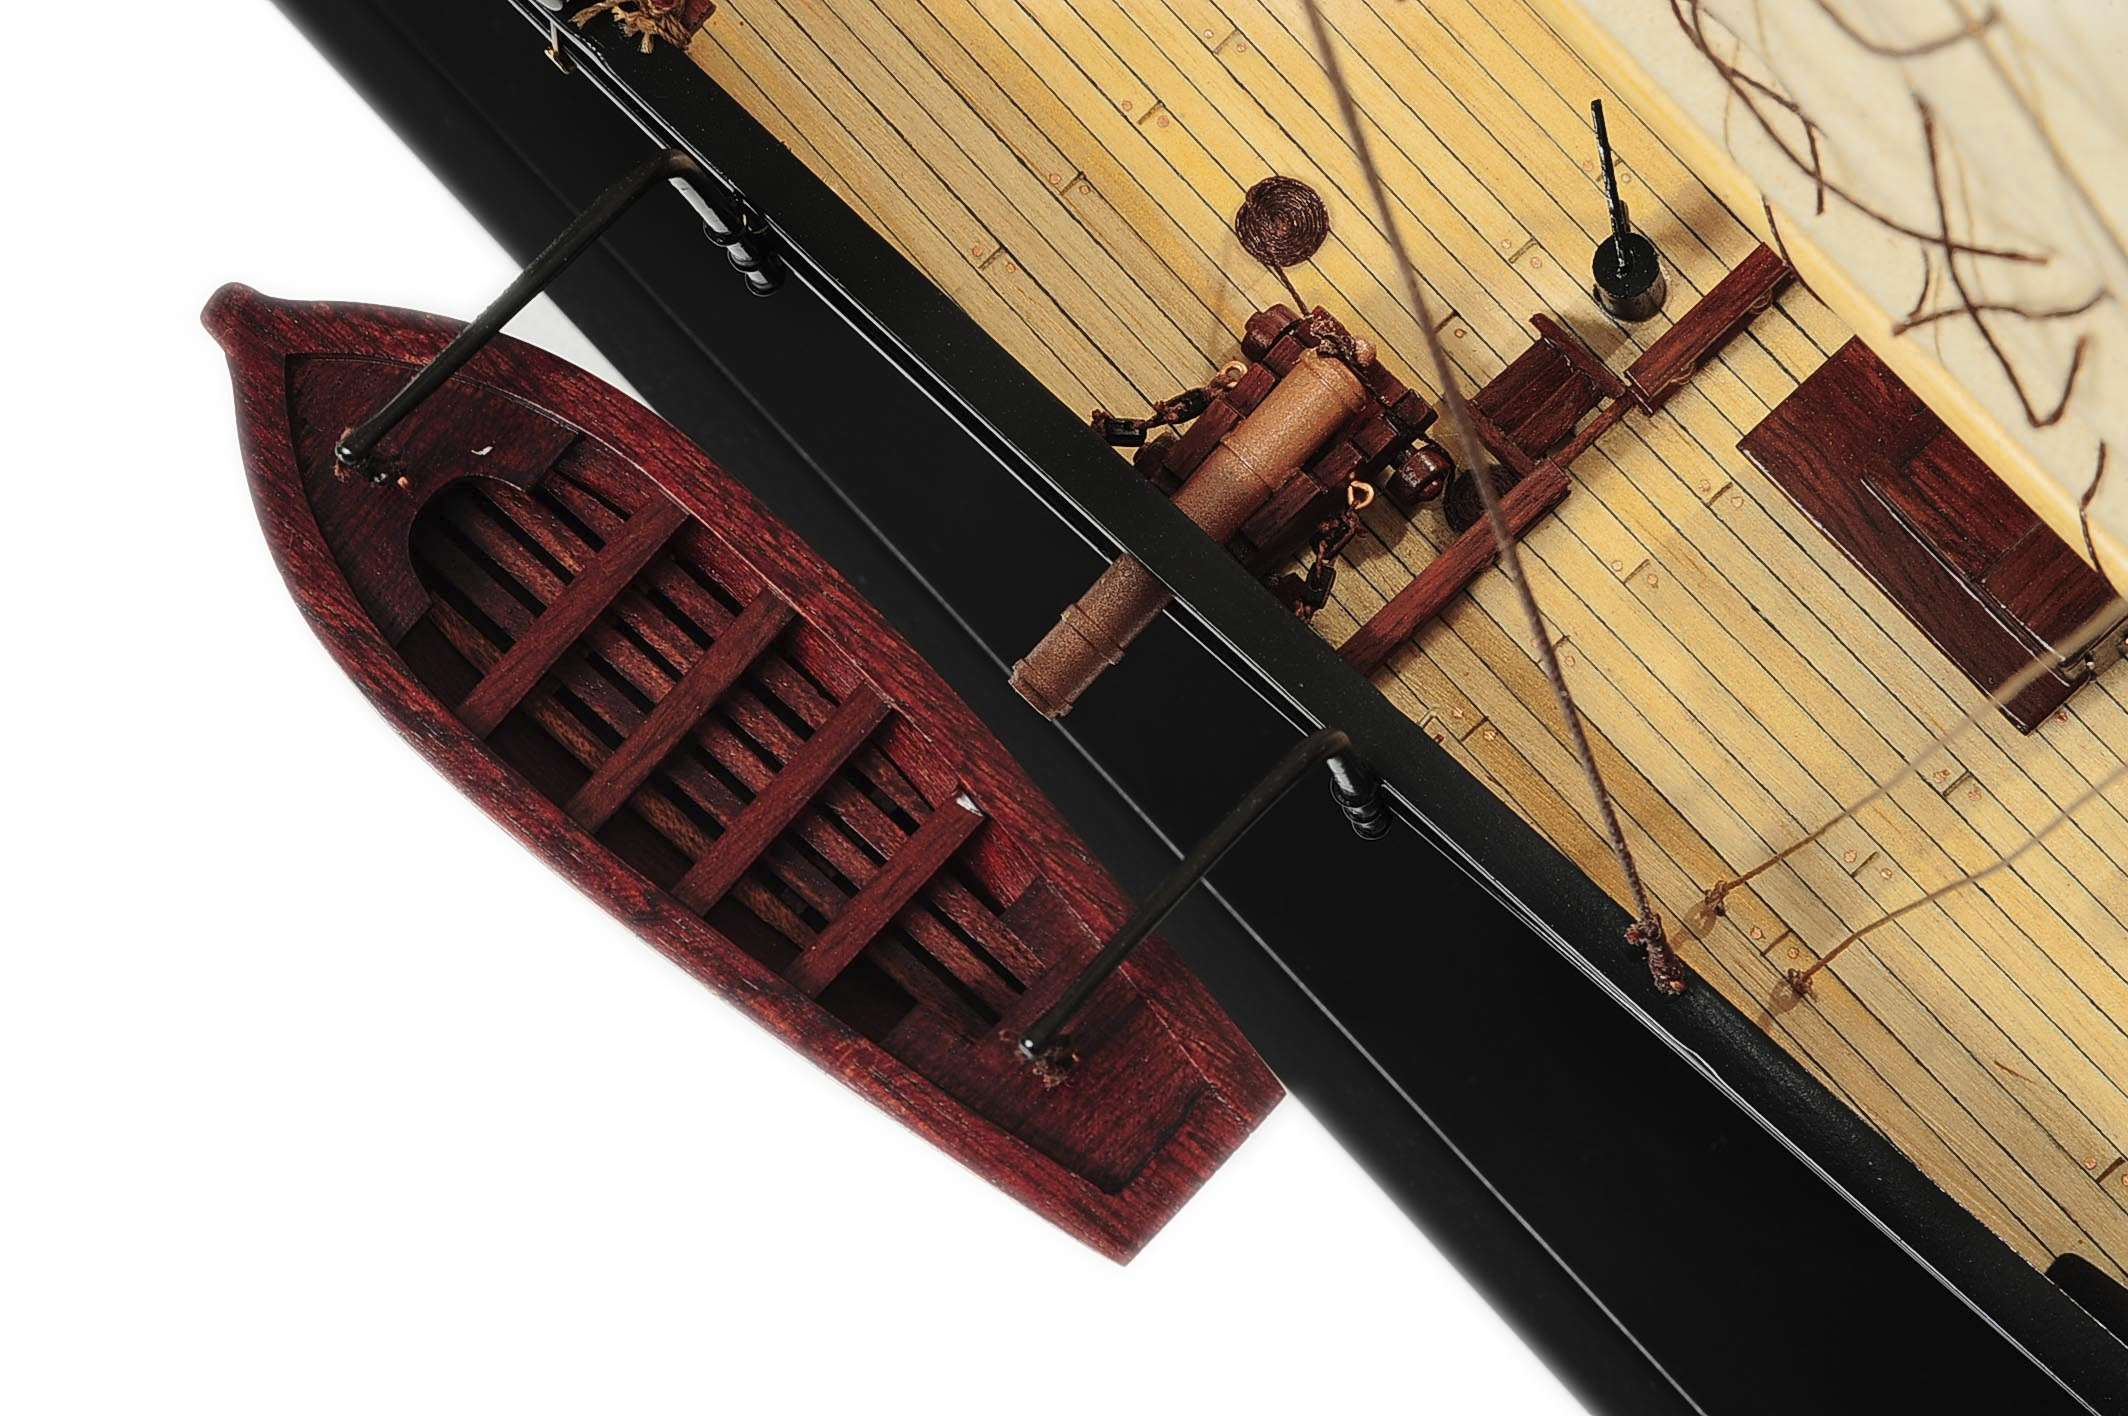 The Eamont Model Boat